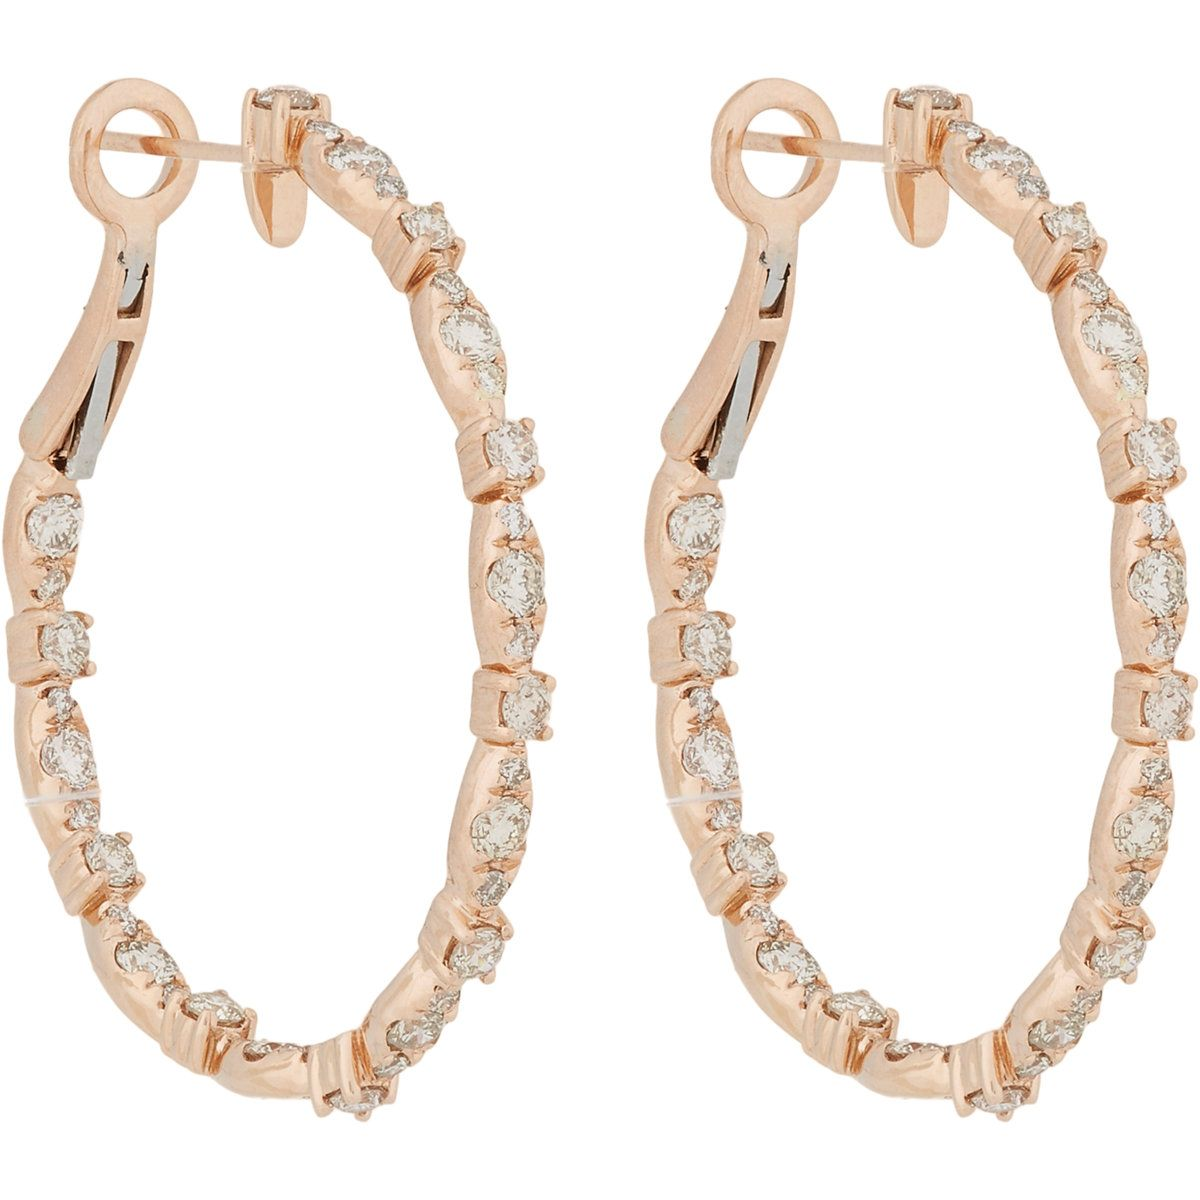 "Zoe Diamond & Rose Gold Hoops, $6,750; <a href=""http://www.barneys.com/on/demandware.store/Sites-BNY-Site/default/Product-Show?pid=00505034001158&cgid=womens-earrings&index=16"">barneys.com</a>"